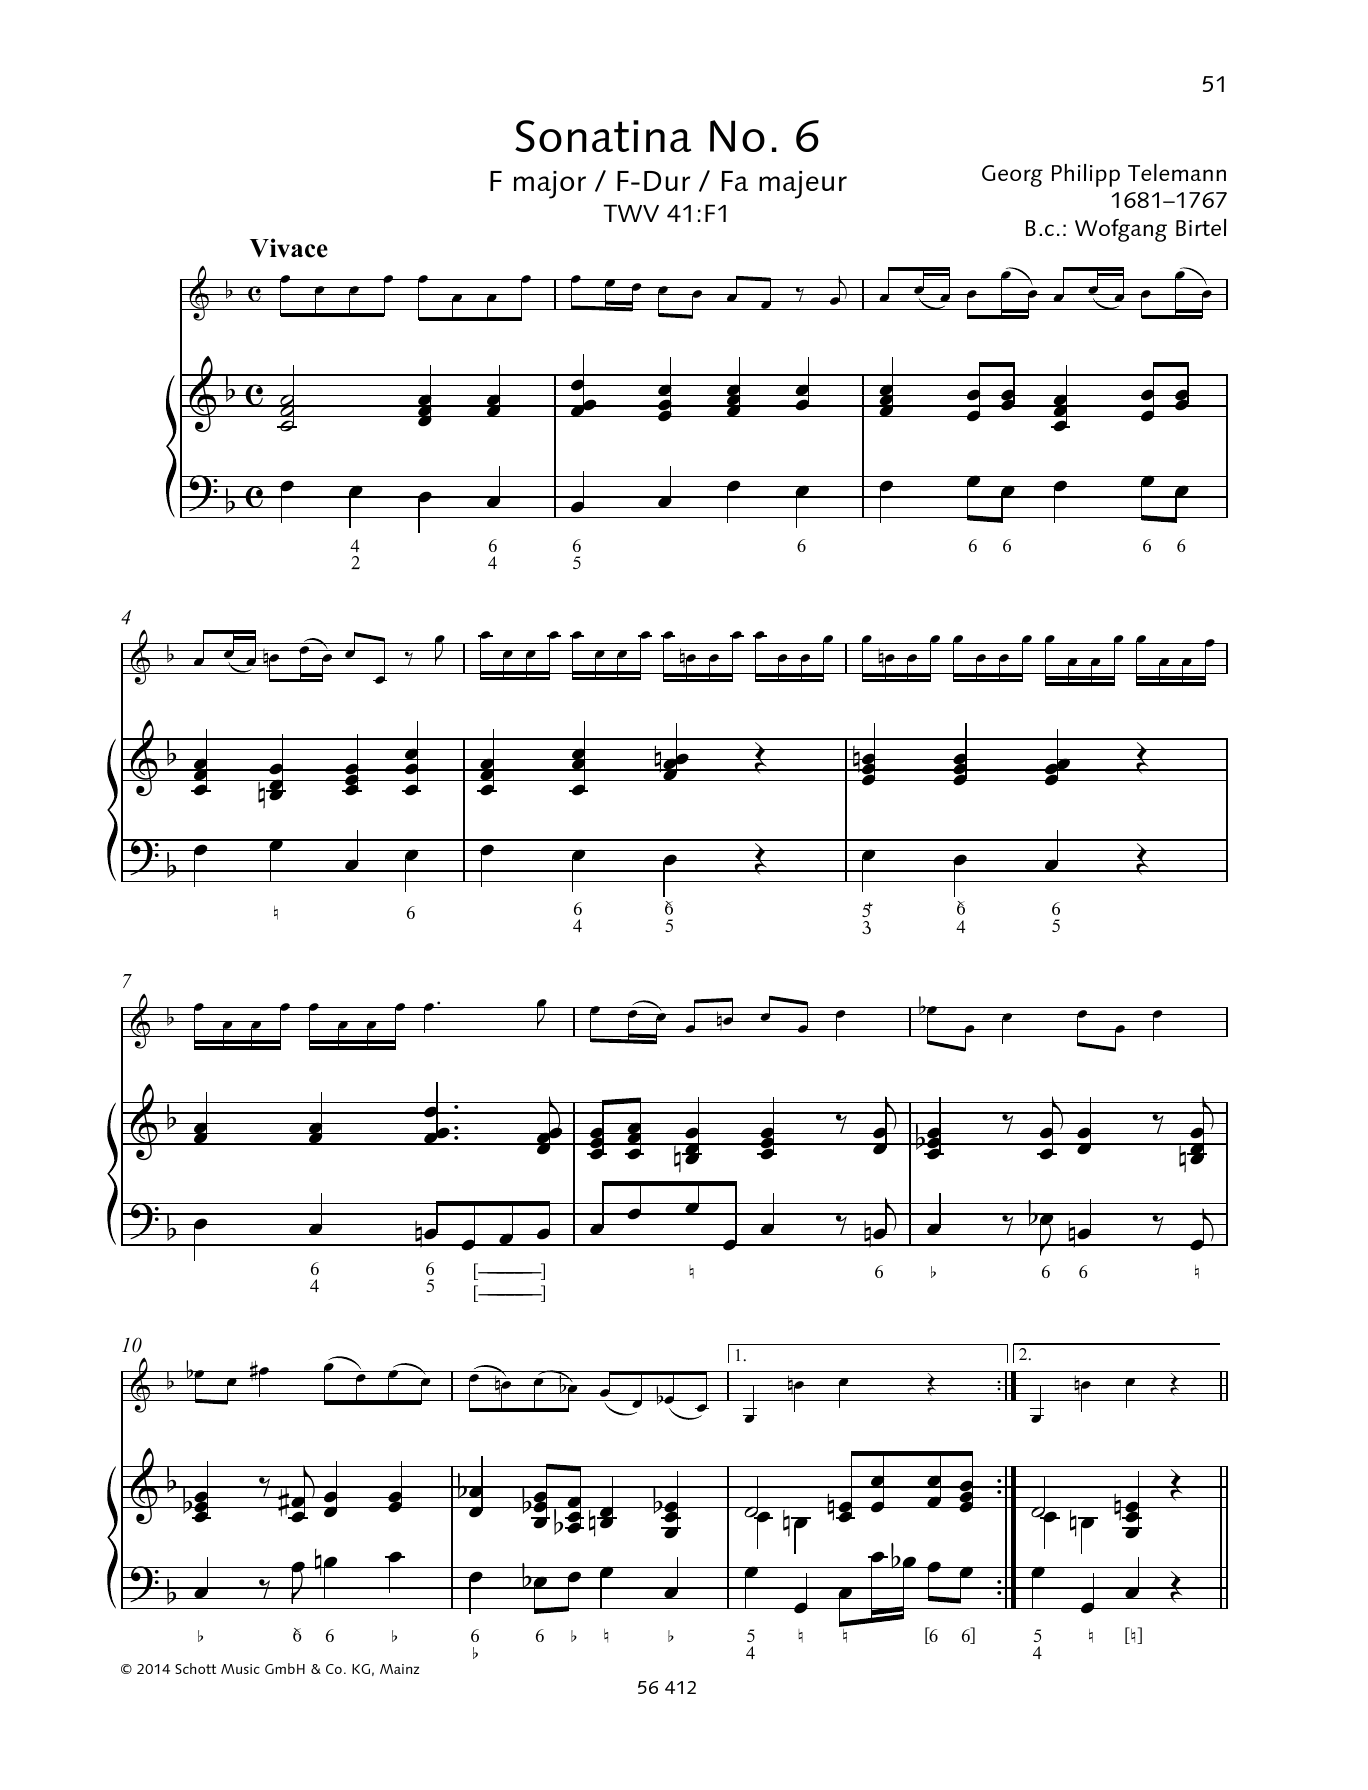 Sonatina No. 6 F major Sheet Music